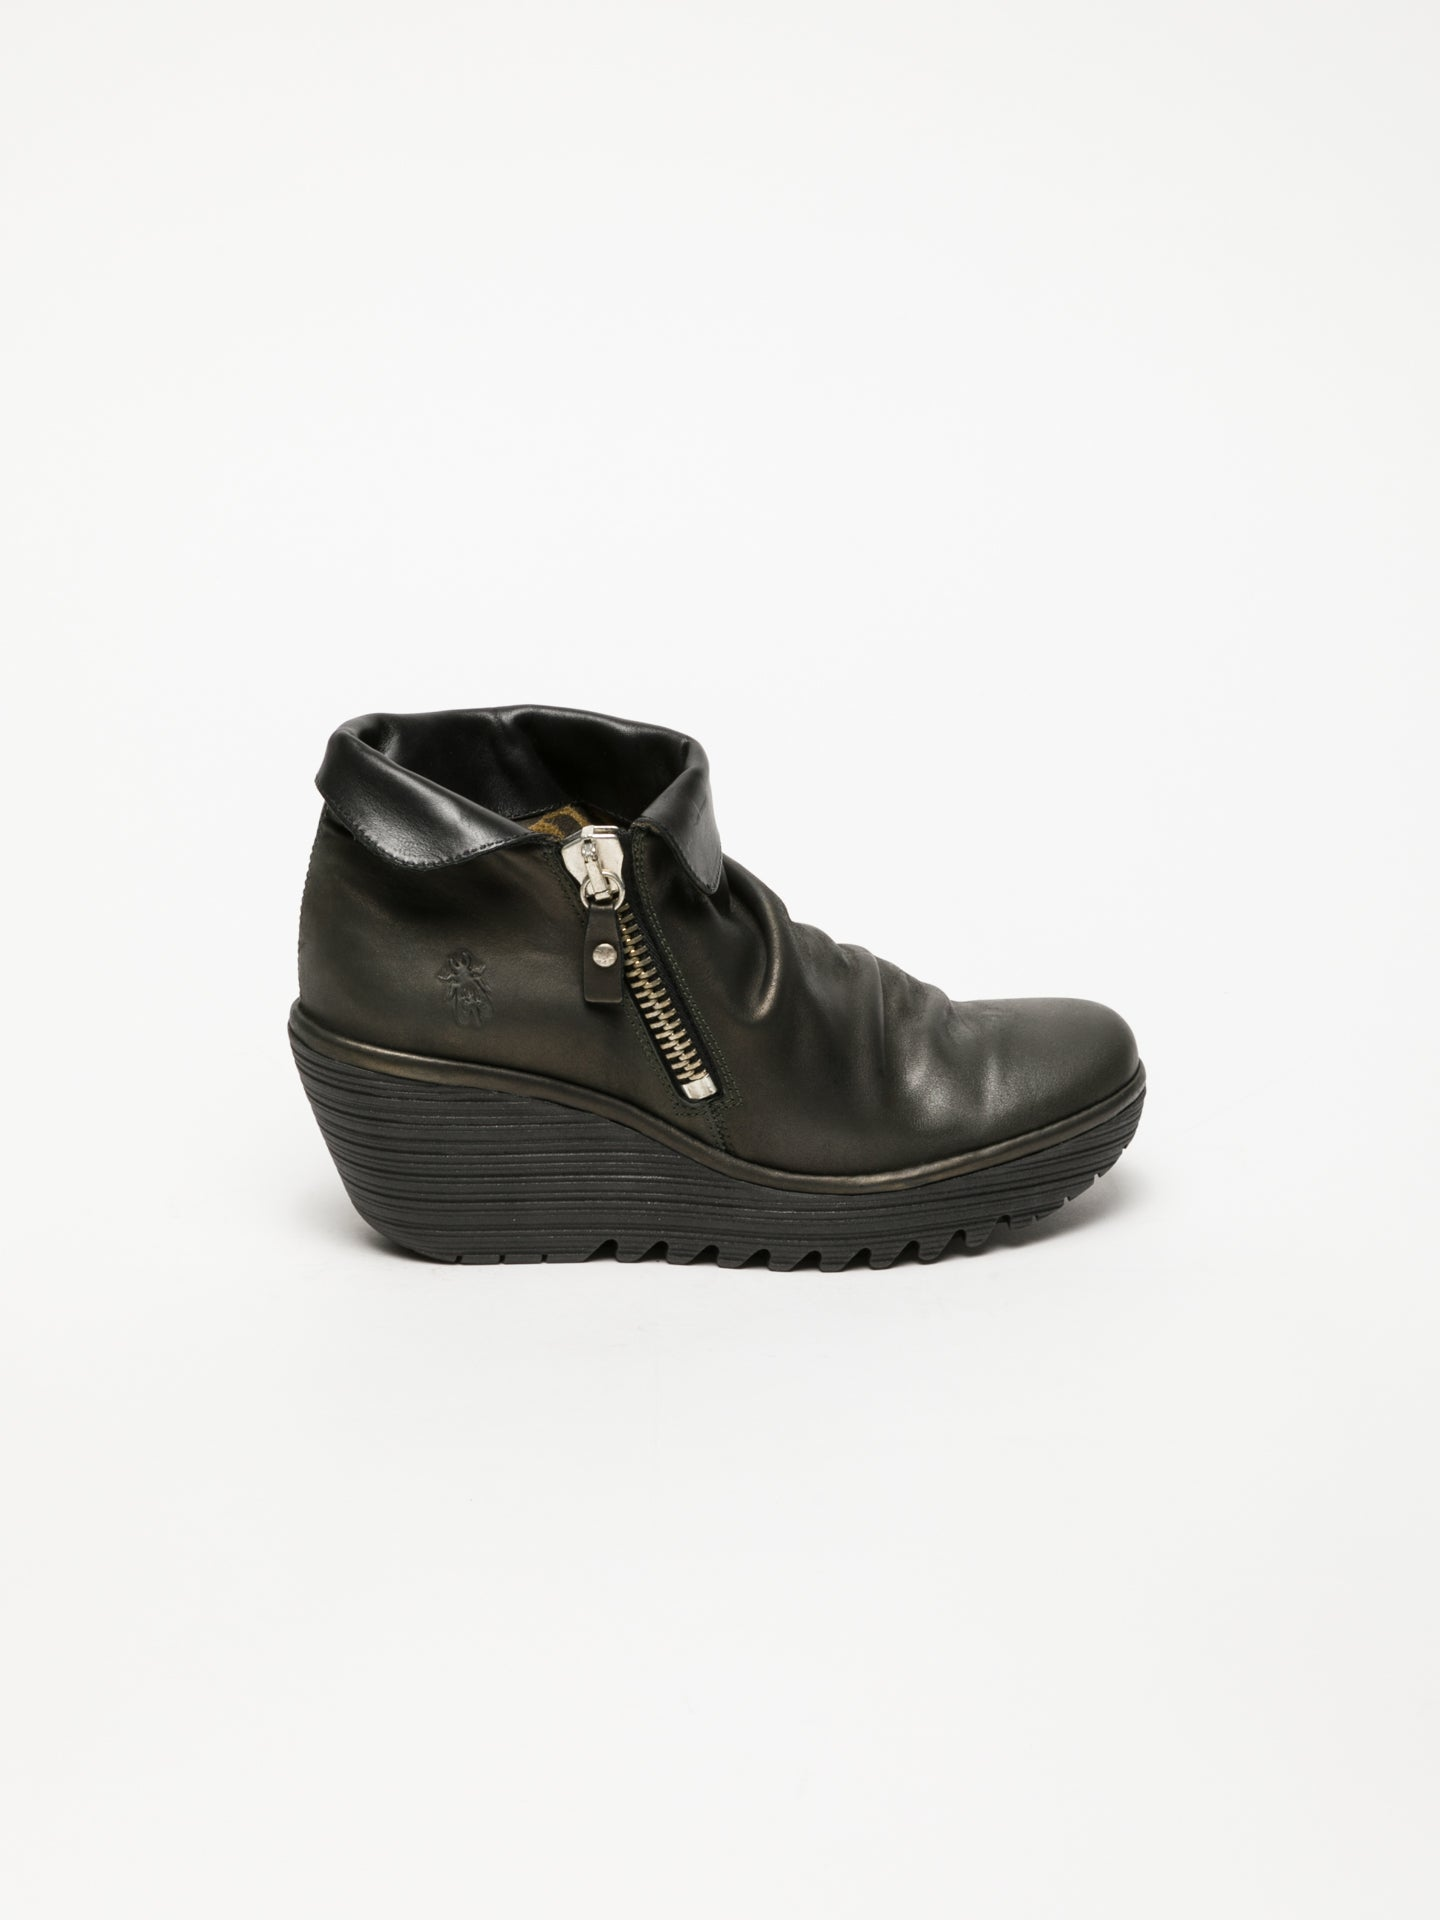 Fly London DarkGray Zip Up Ankle Boots